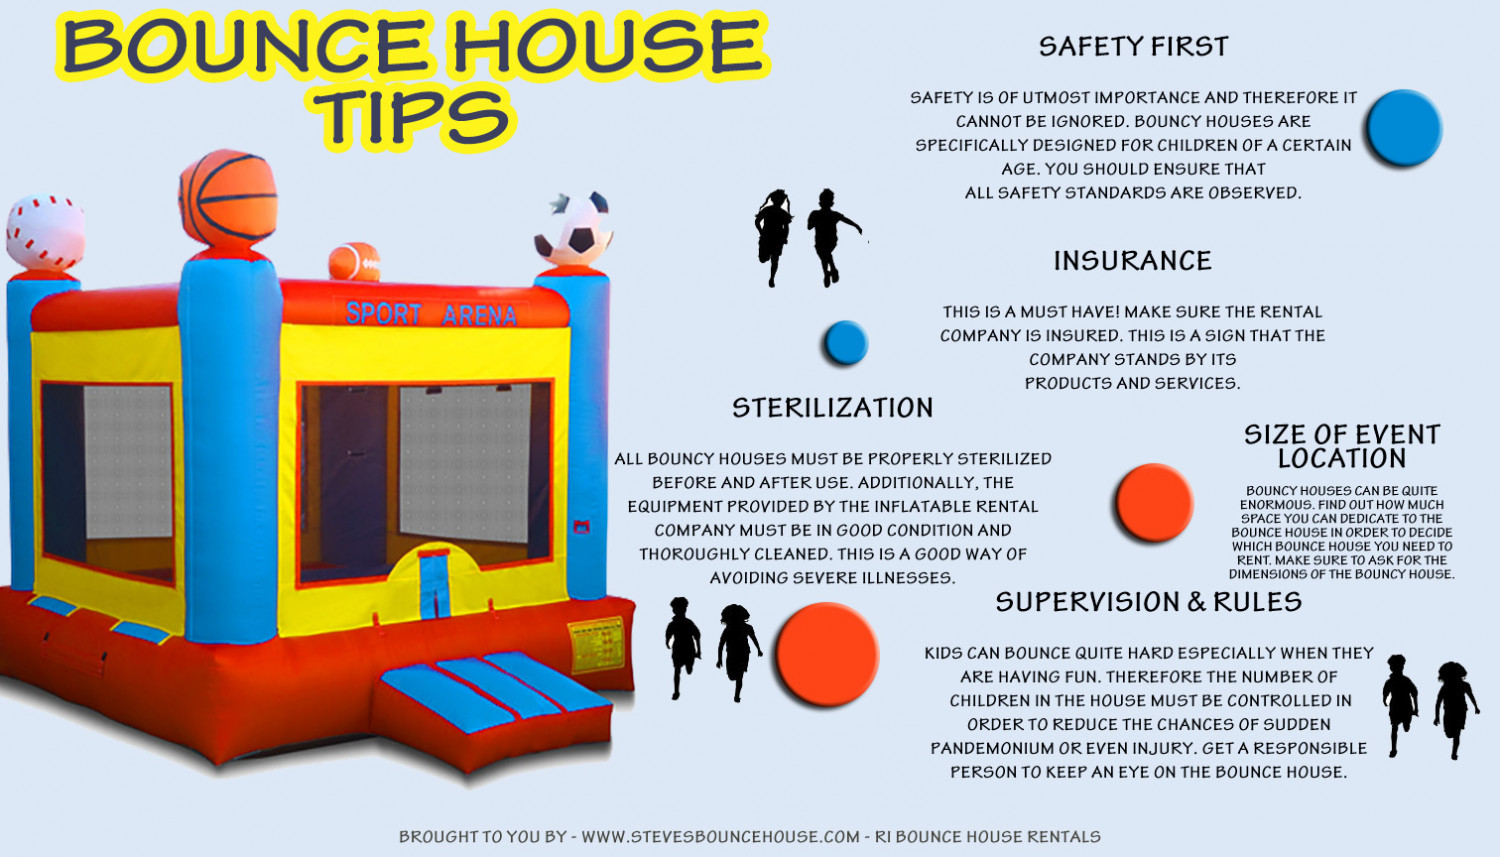 Bounce House Tips Infographic